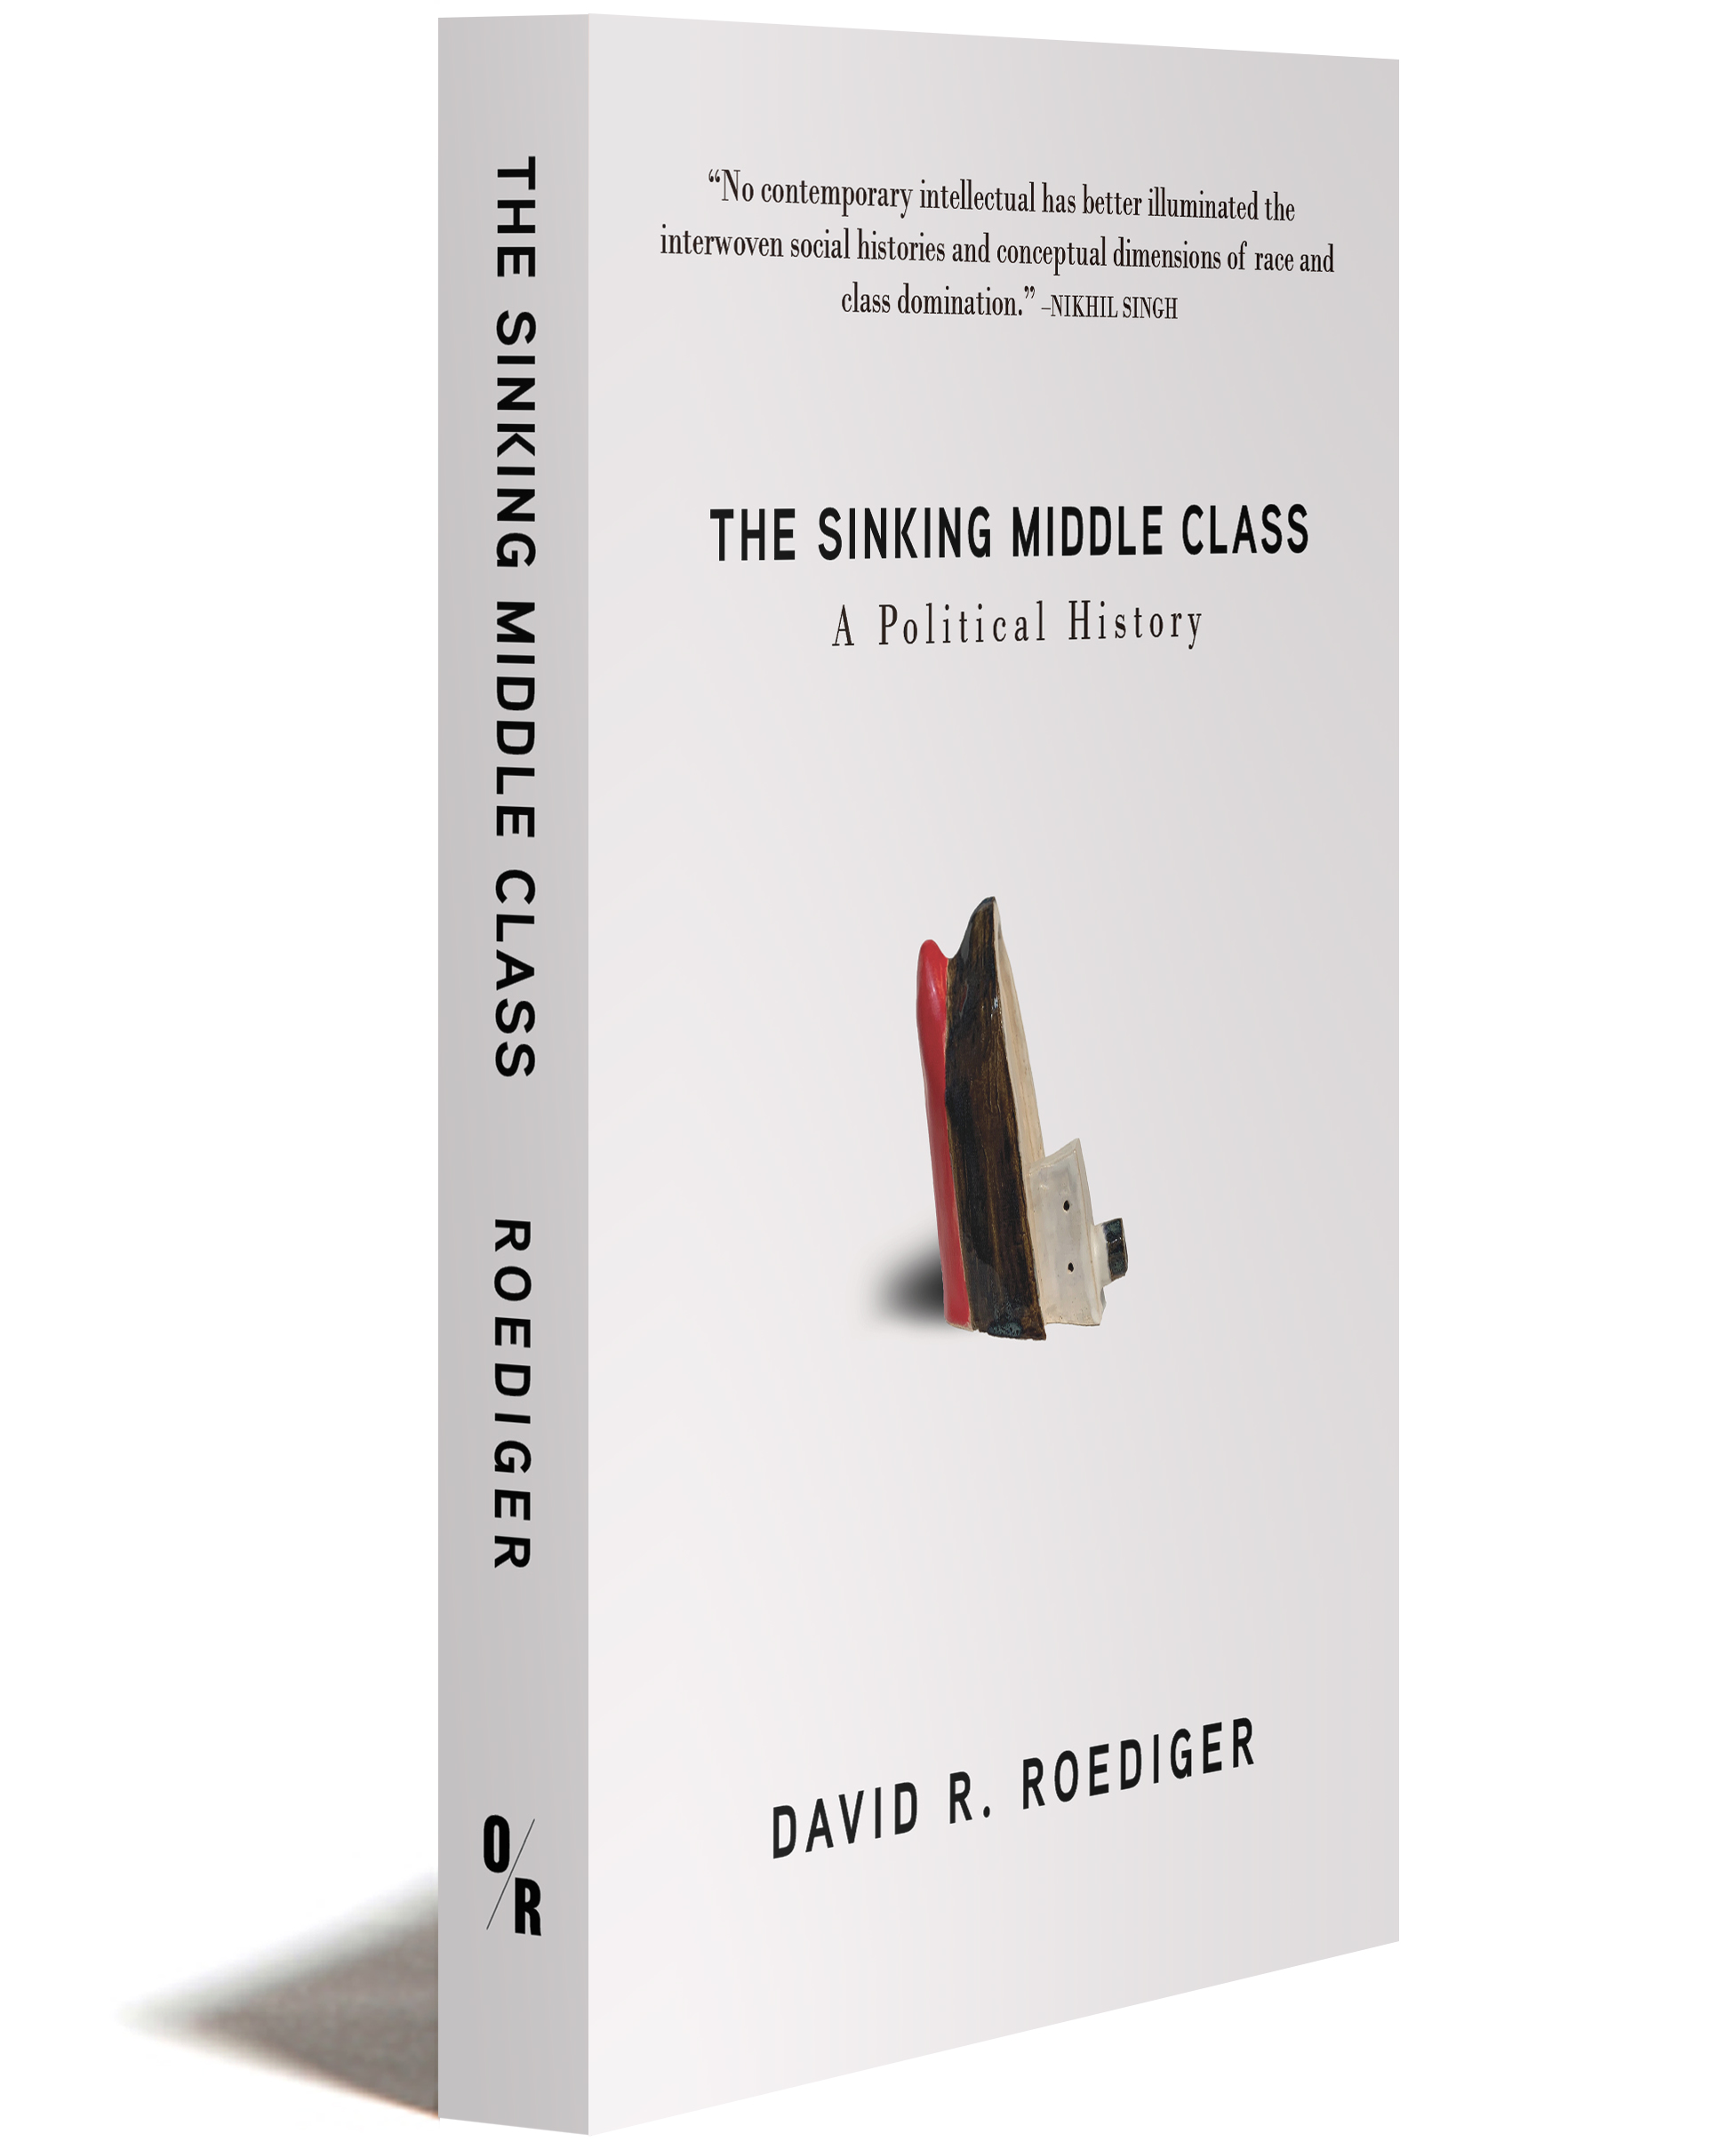 The Sinking Middle Class  3D cover